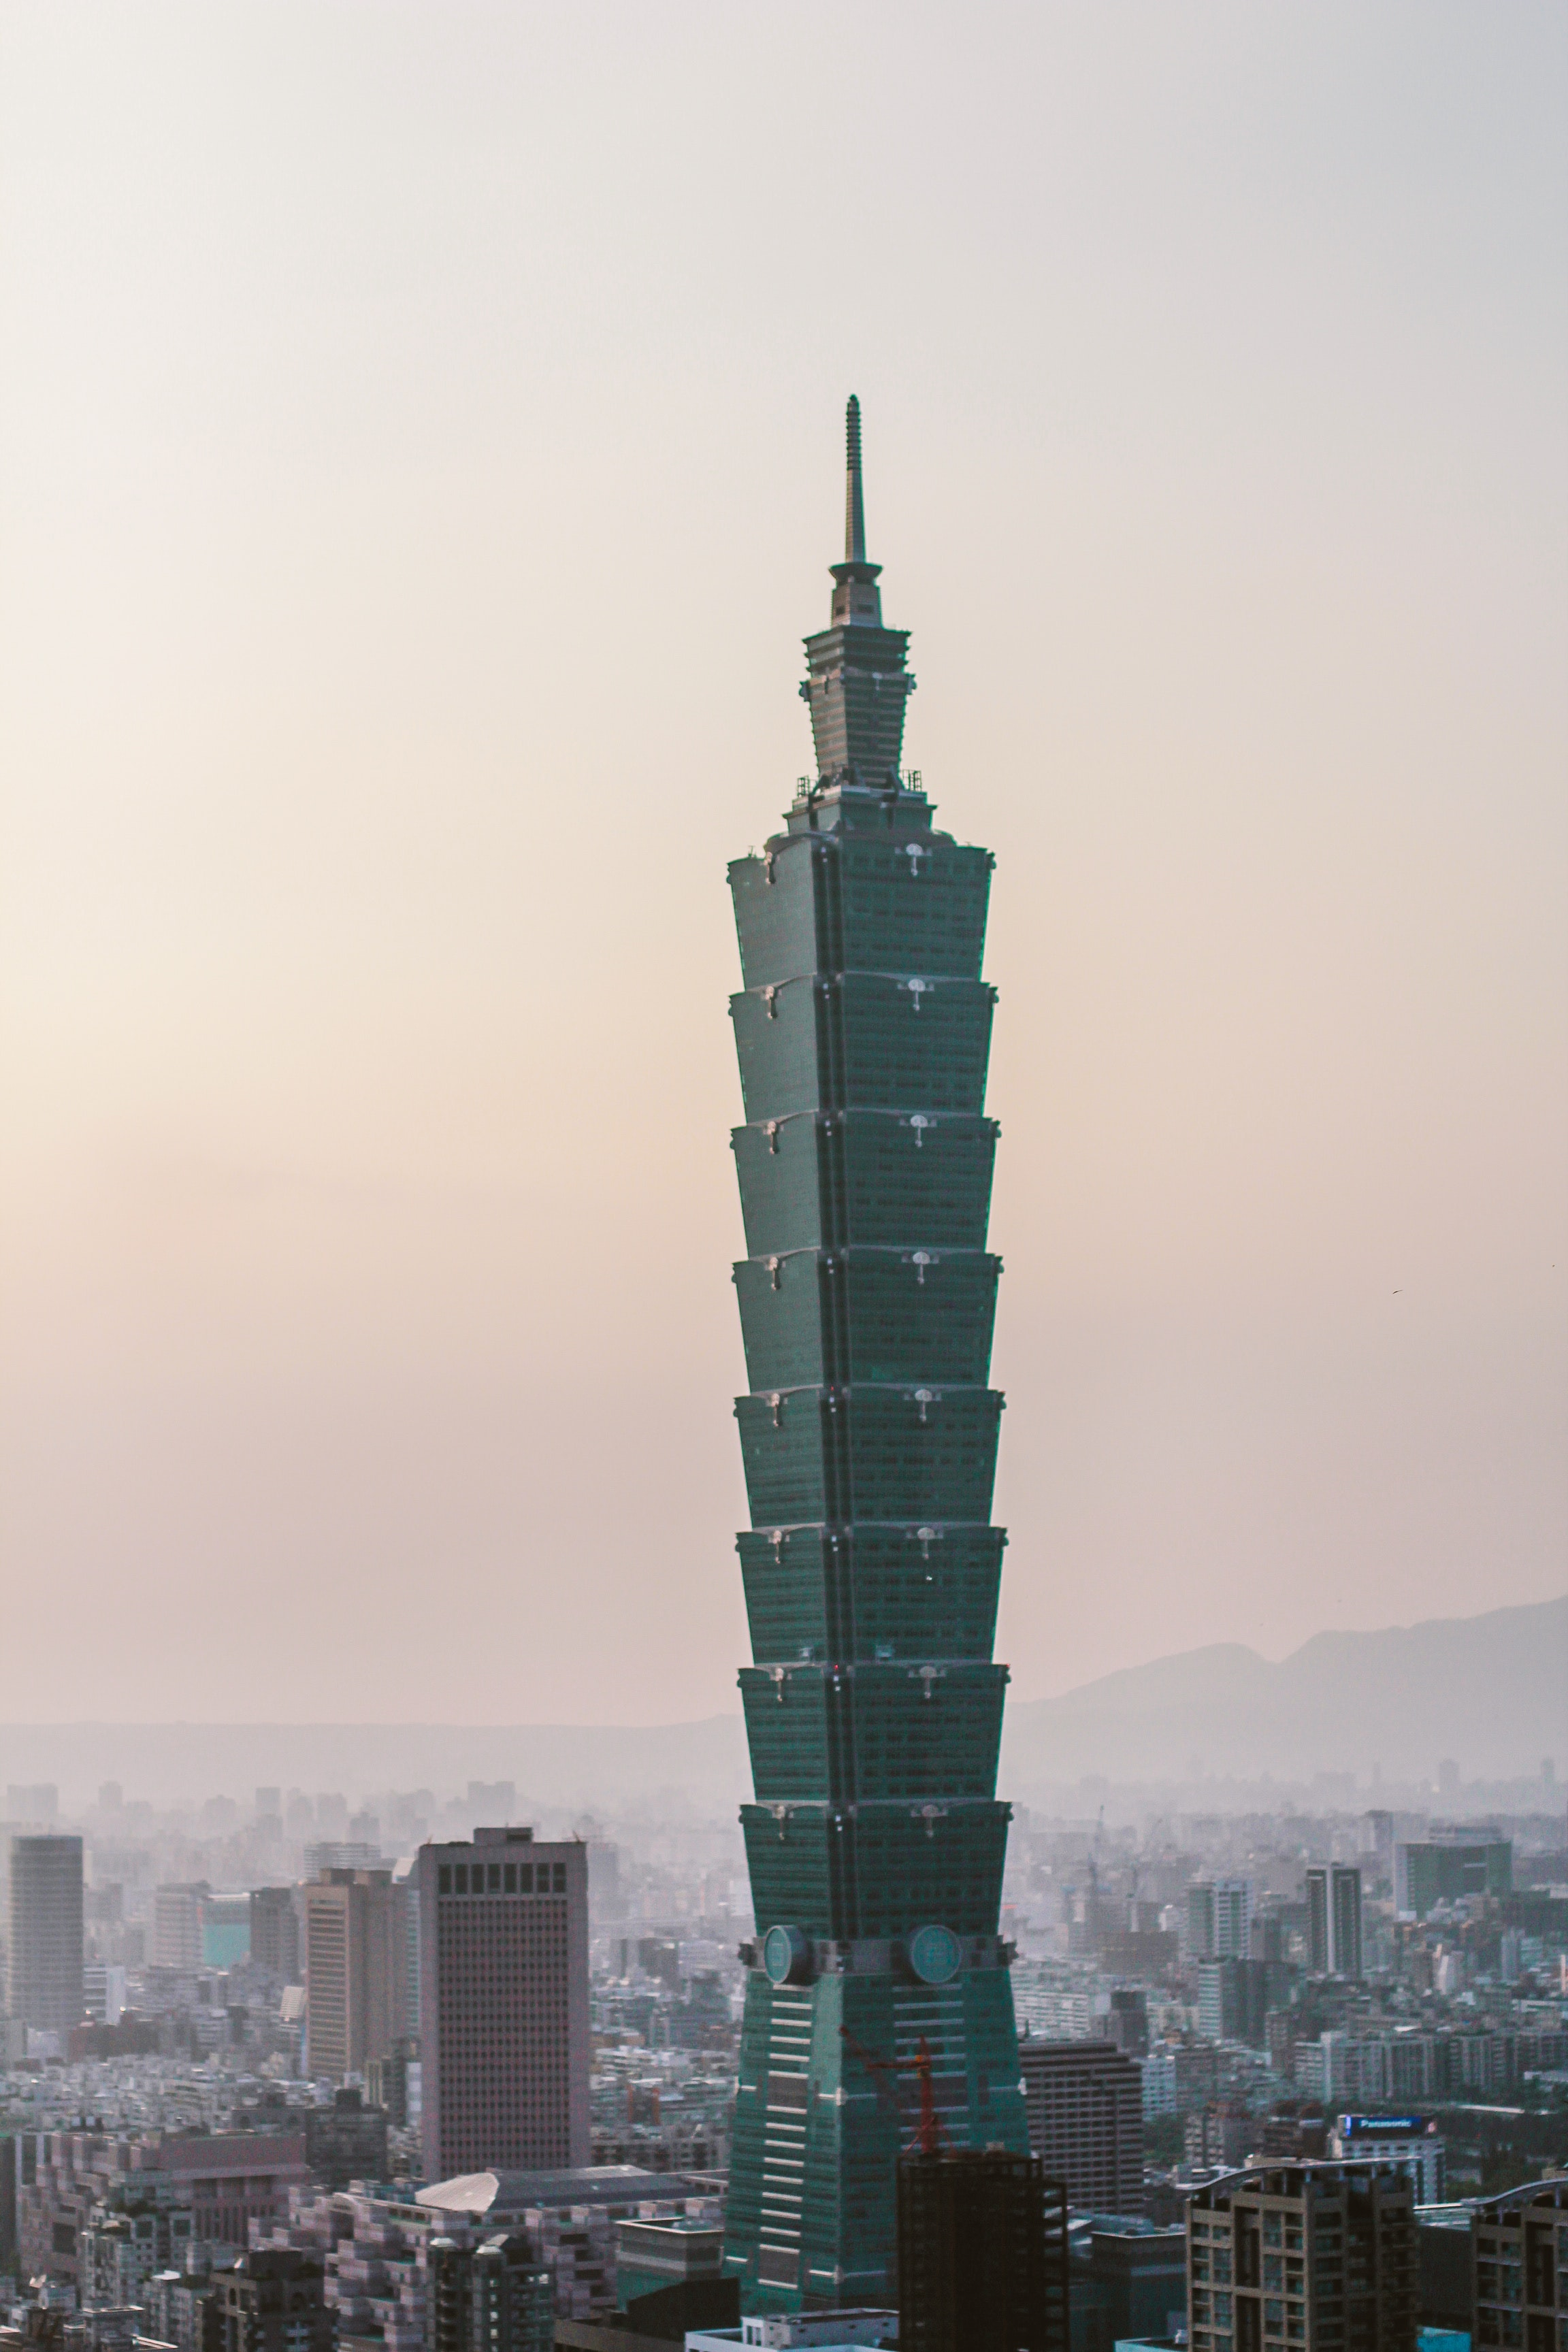 Taipei 101 under clear sky at daytime photo